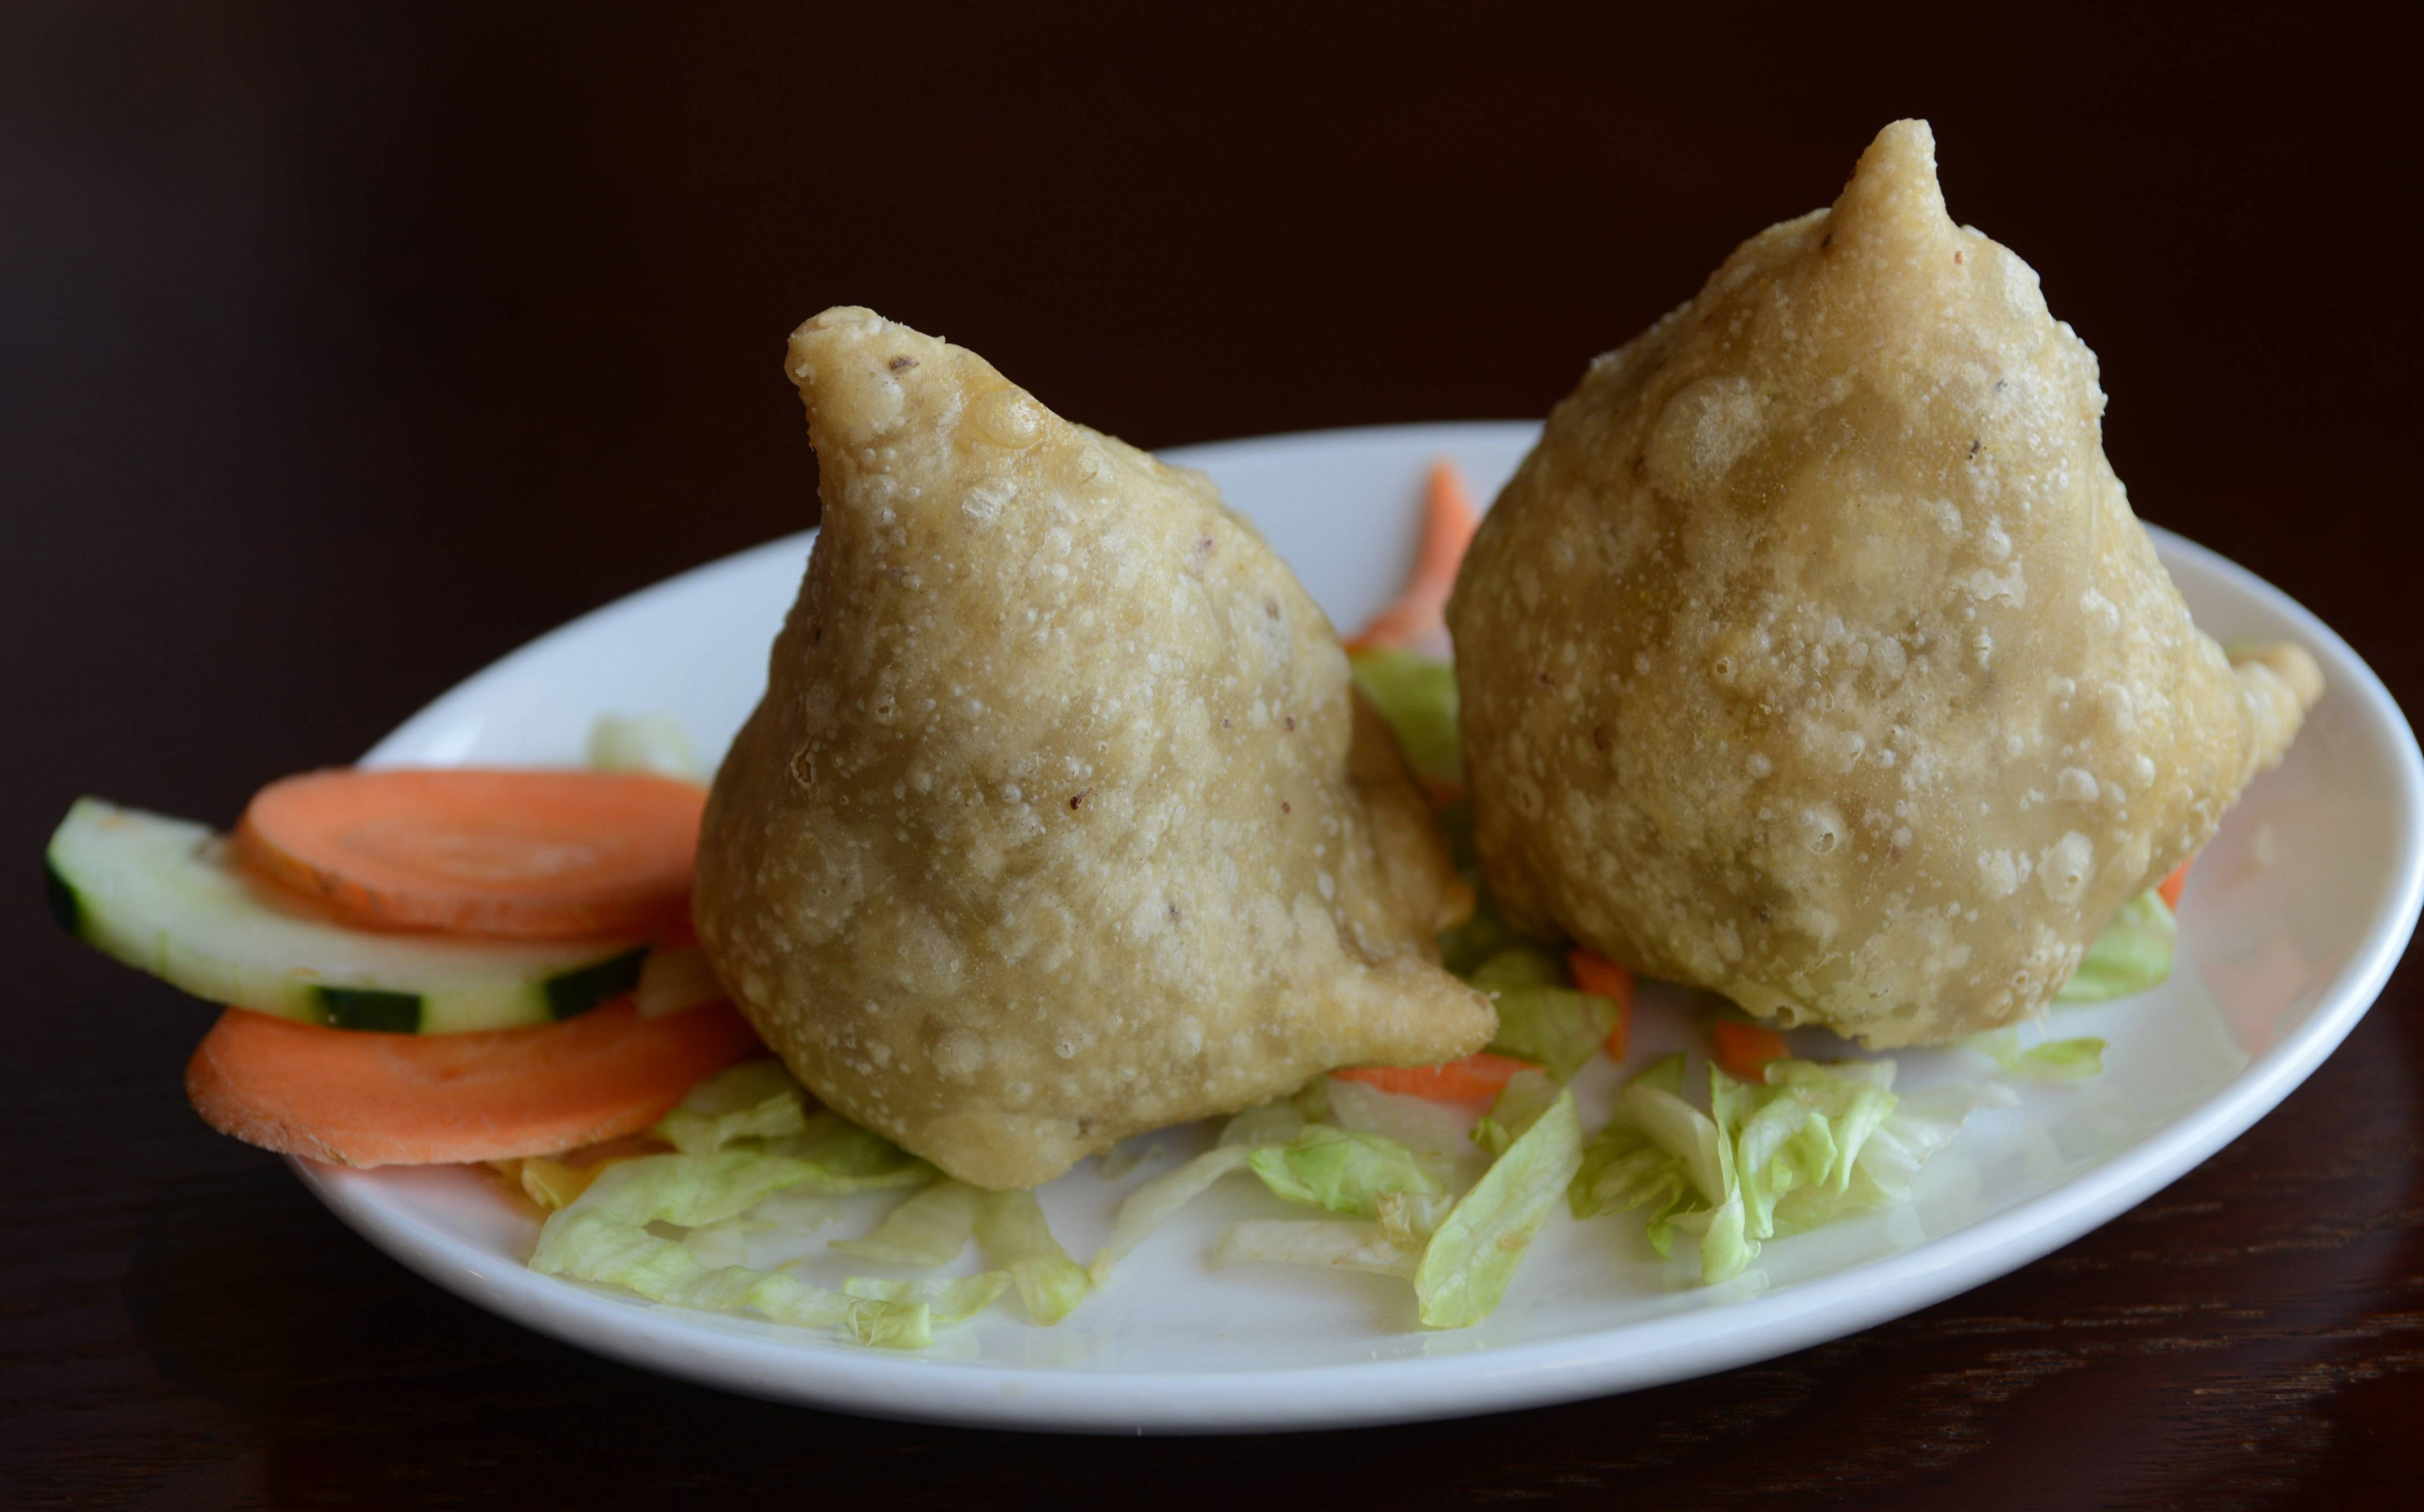 Keema samosa, flaky dumplings stuffed with minced lamb, are a perfect starter at Rolling Meadows' Spice Grill.